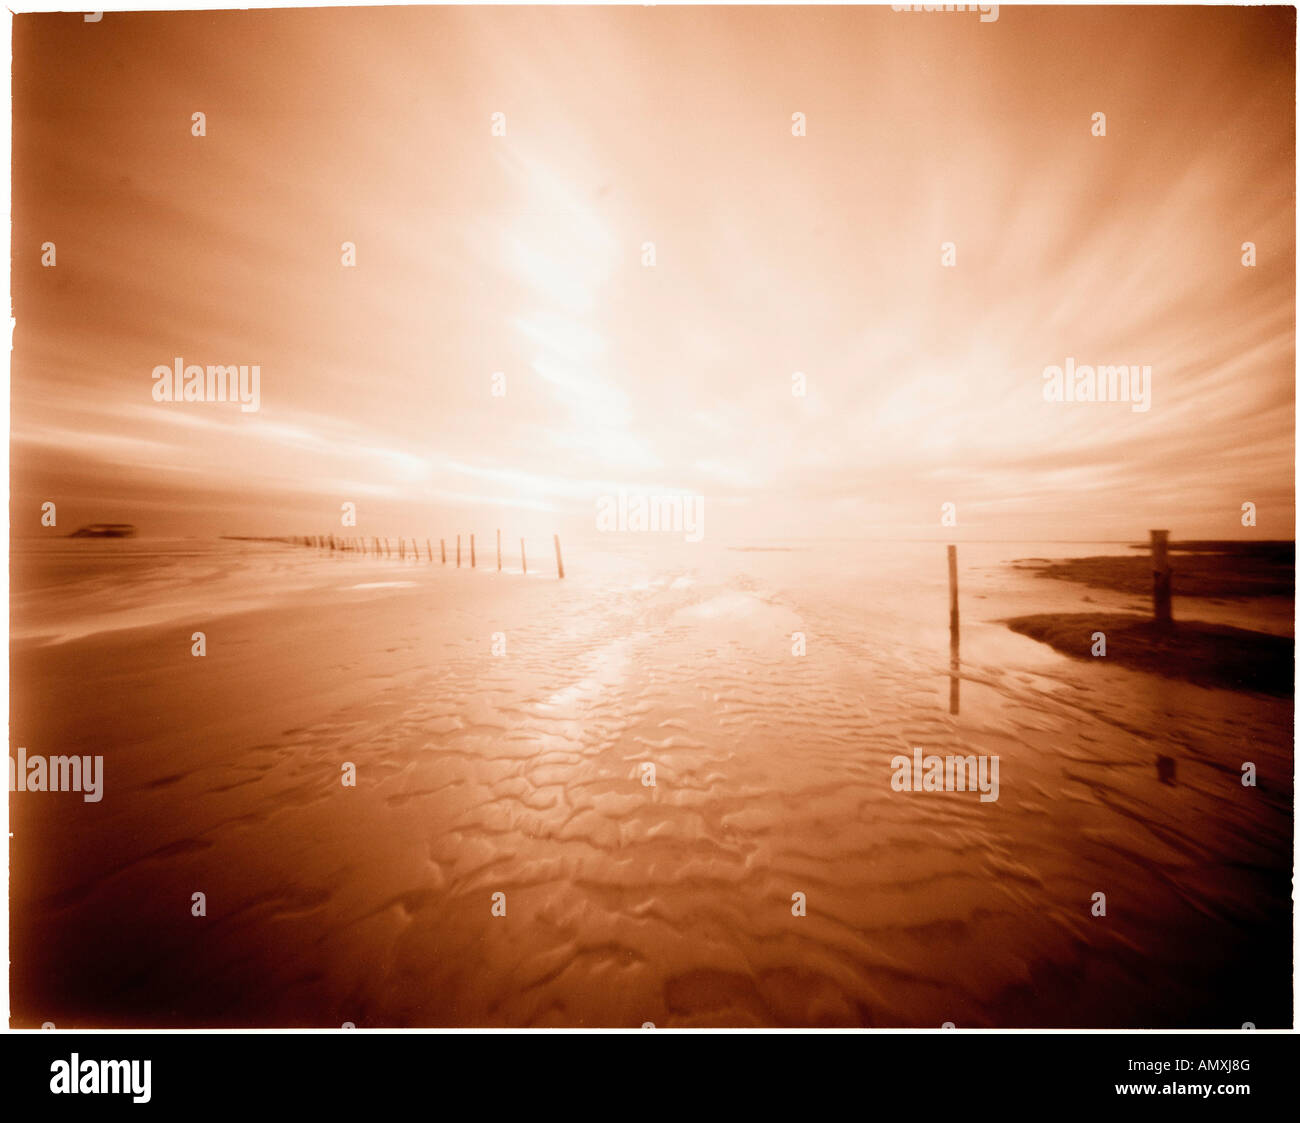 Silhouette of wooden posts on beach, Schleswig-Holstein, Germany - Stock Image